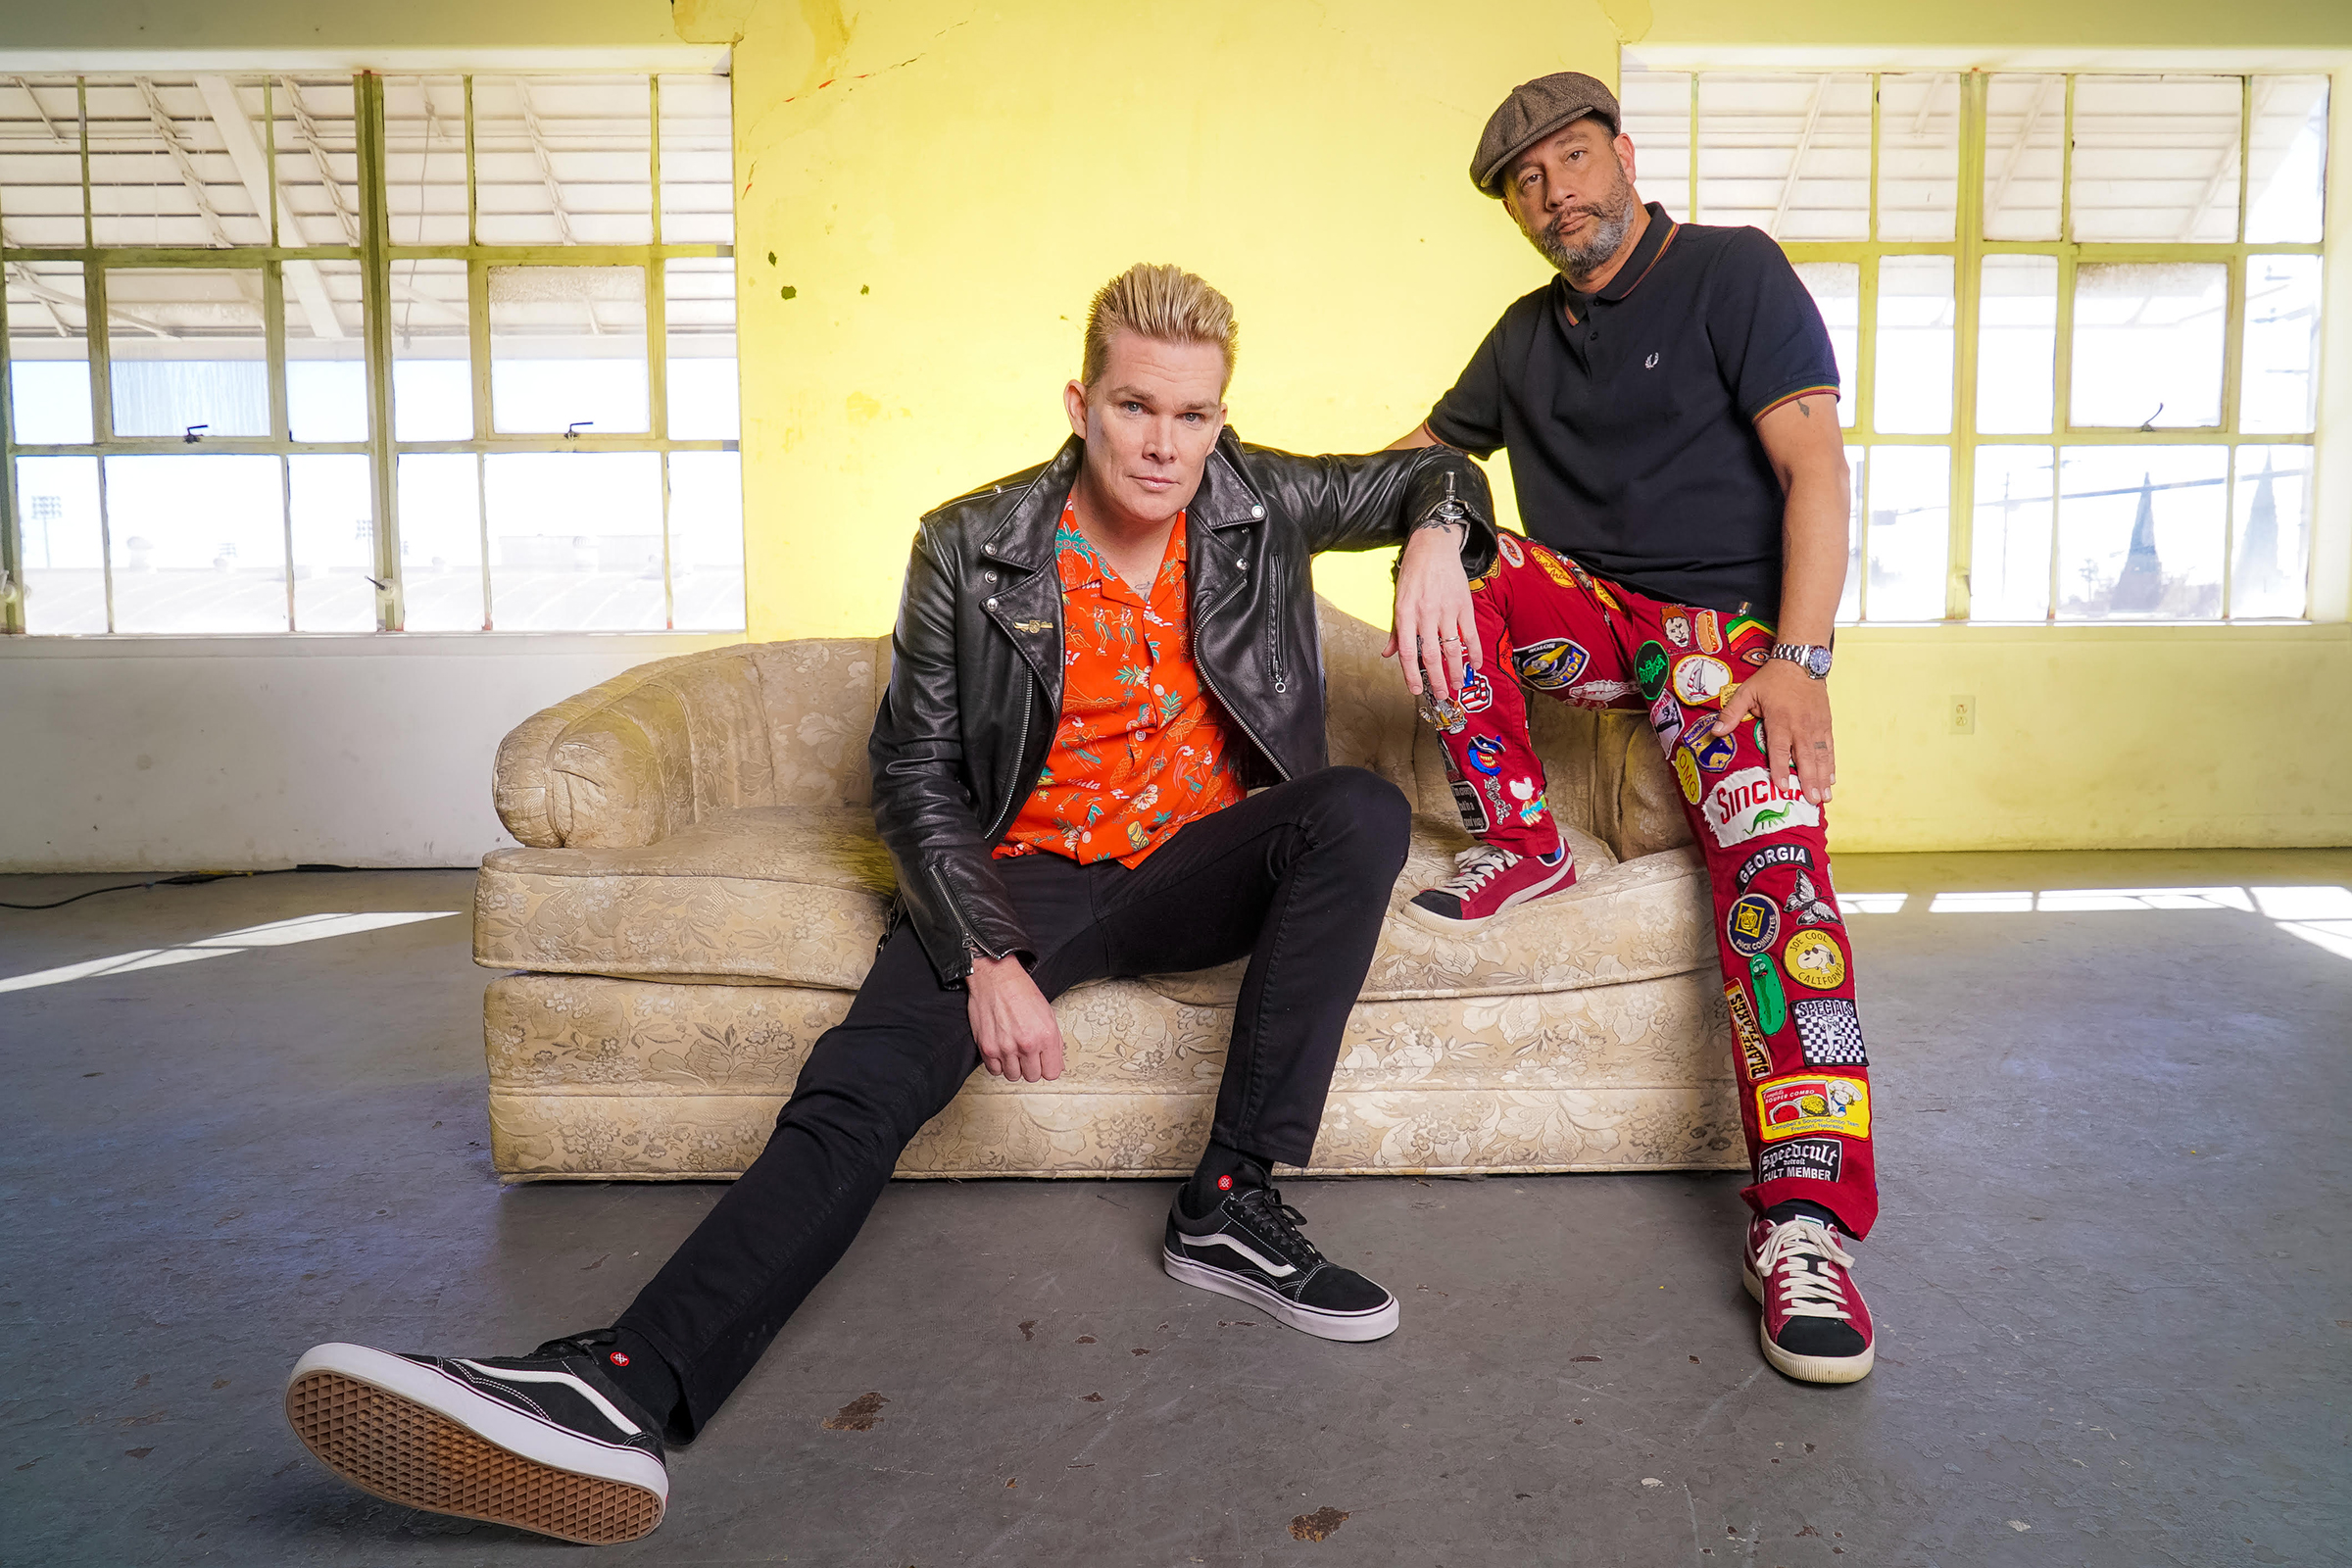 Sugar Ray Tour 2020 Mark McGrath Interview: New Sugar Ray Album, Nineties Tours